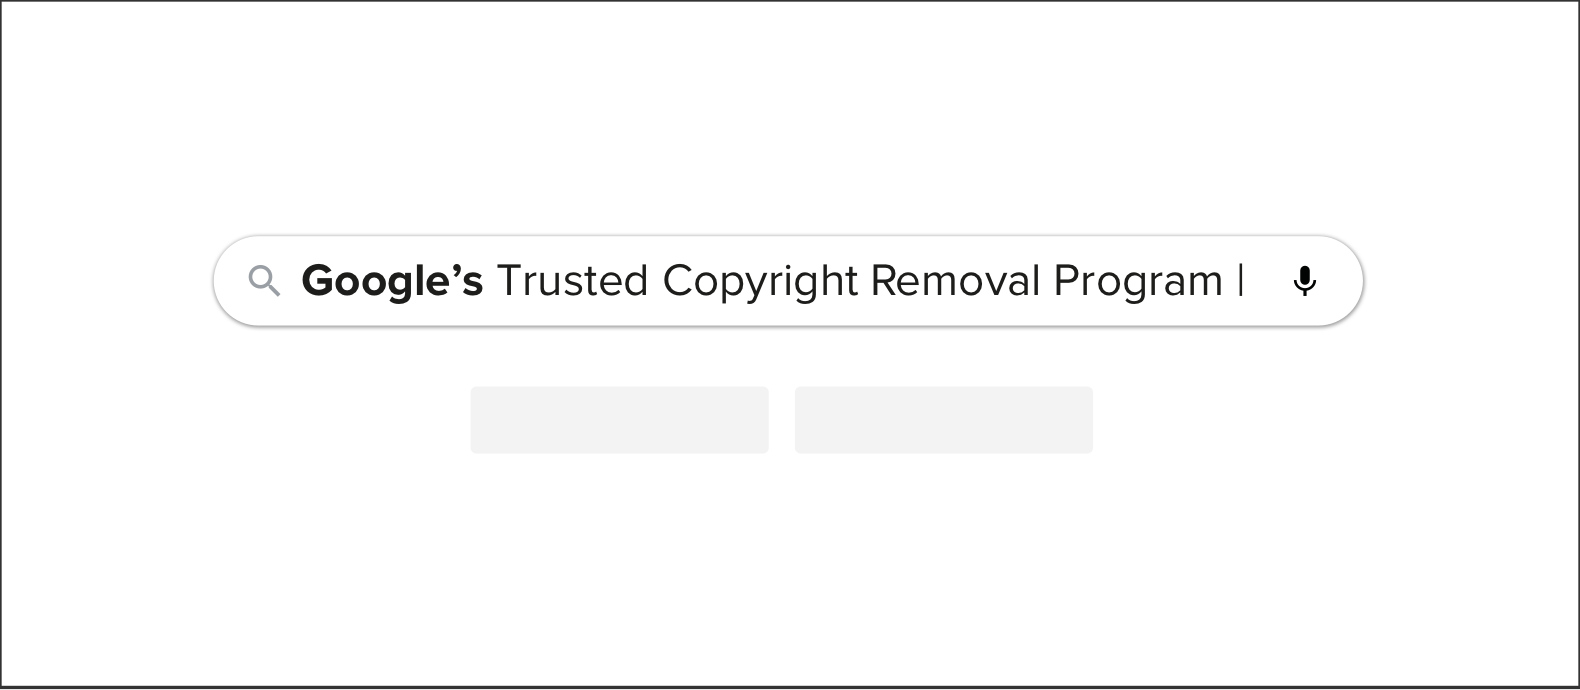 What is Google's Trusted Copyright Removal program?